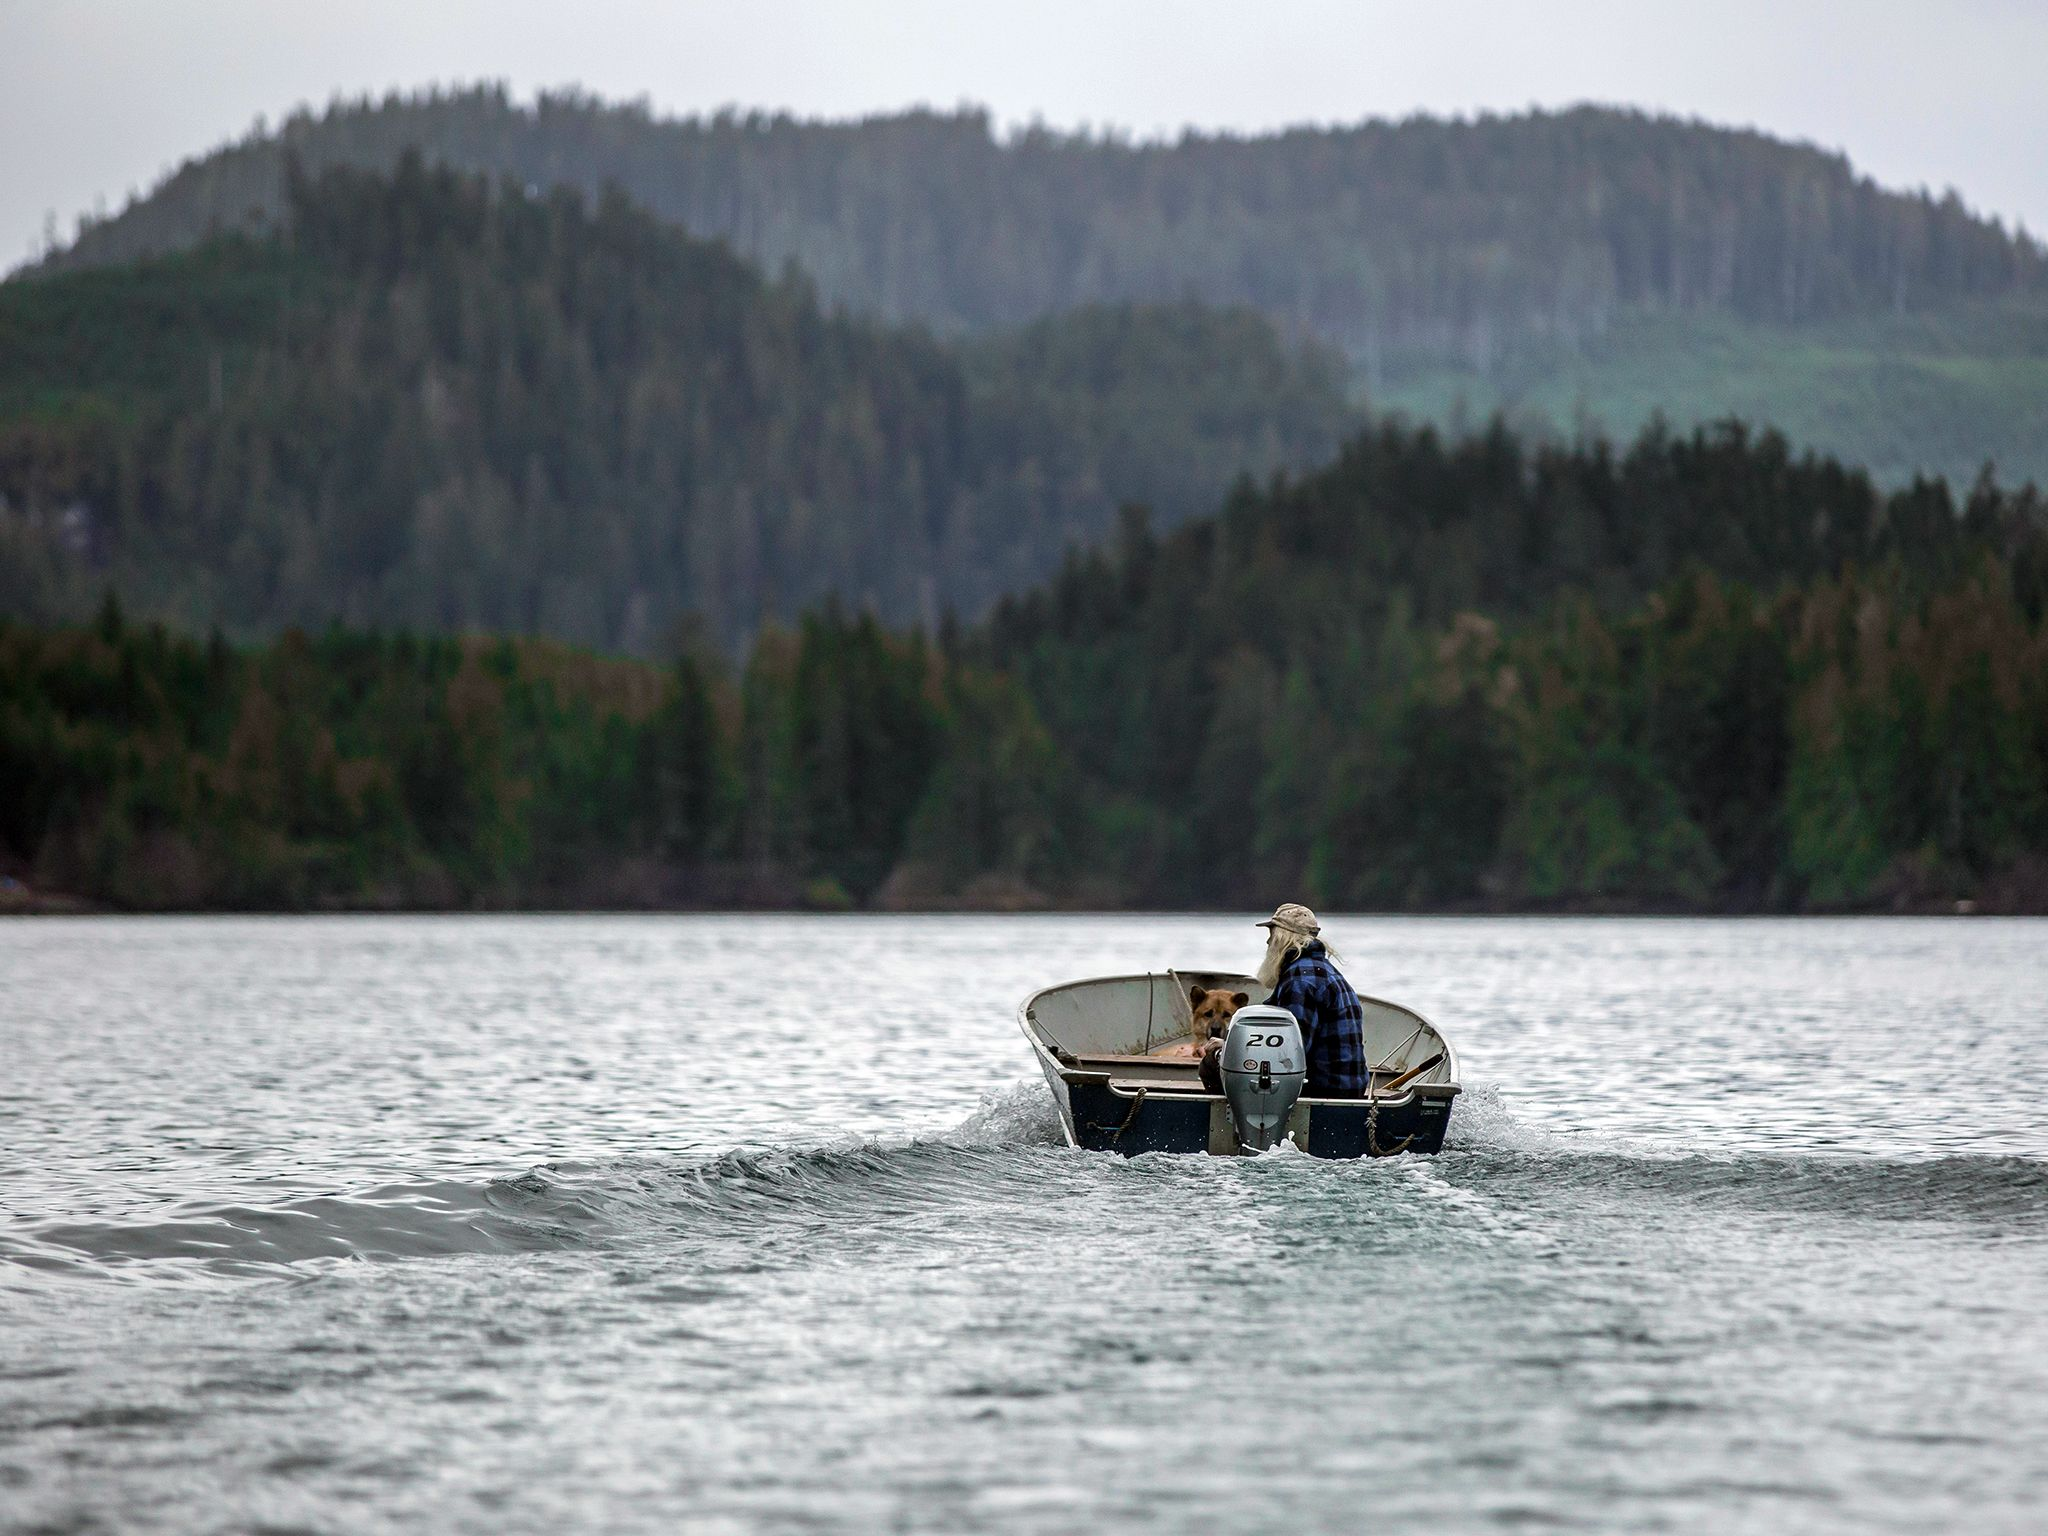 Port Protection, Alaska: Gary drives his boat to the place where he wants to forage for clams. Th... [Фото дня - Ноябрь 2015]